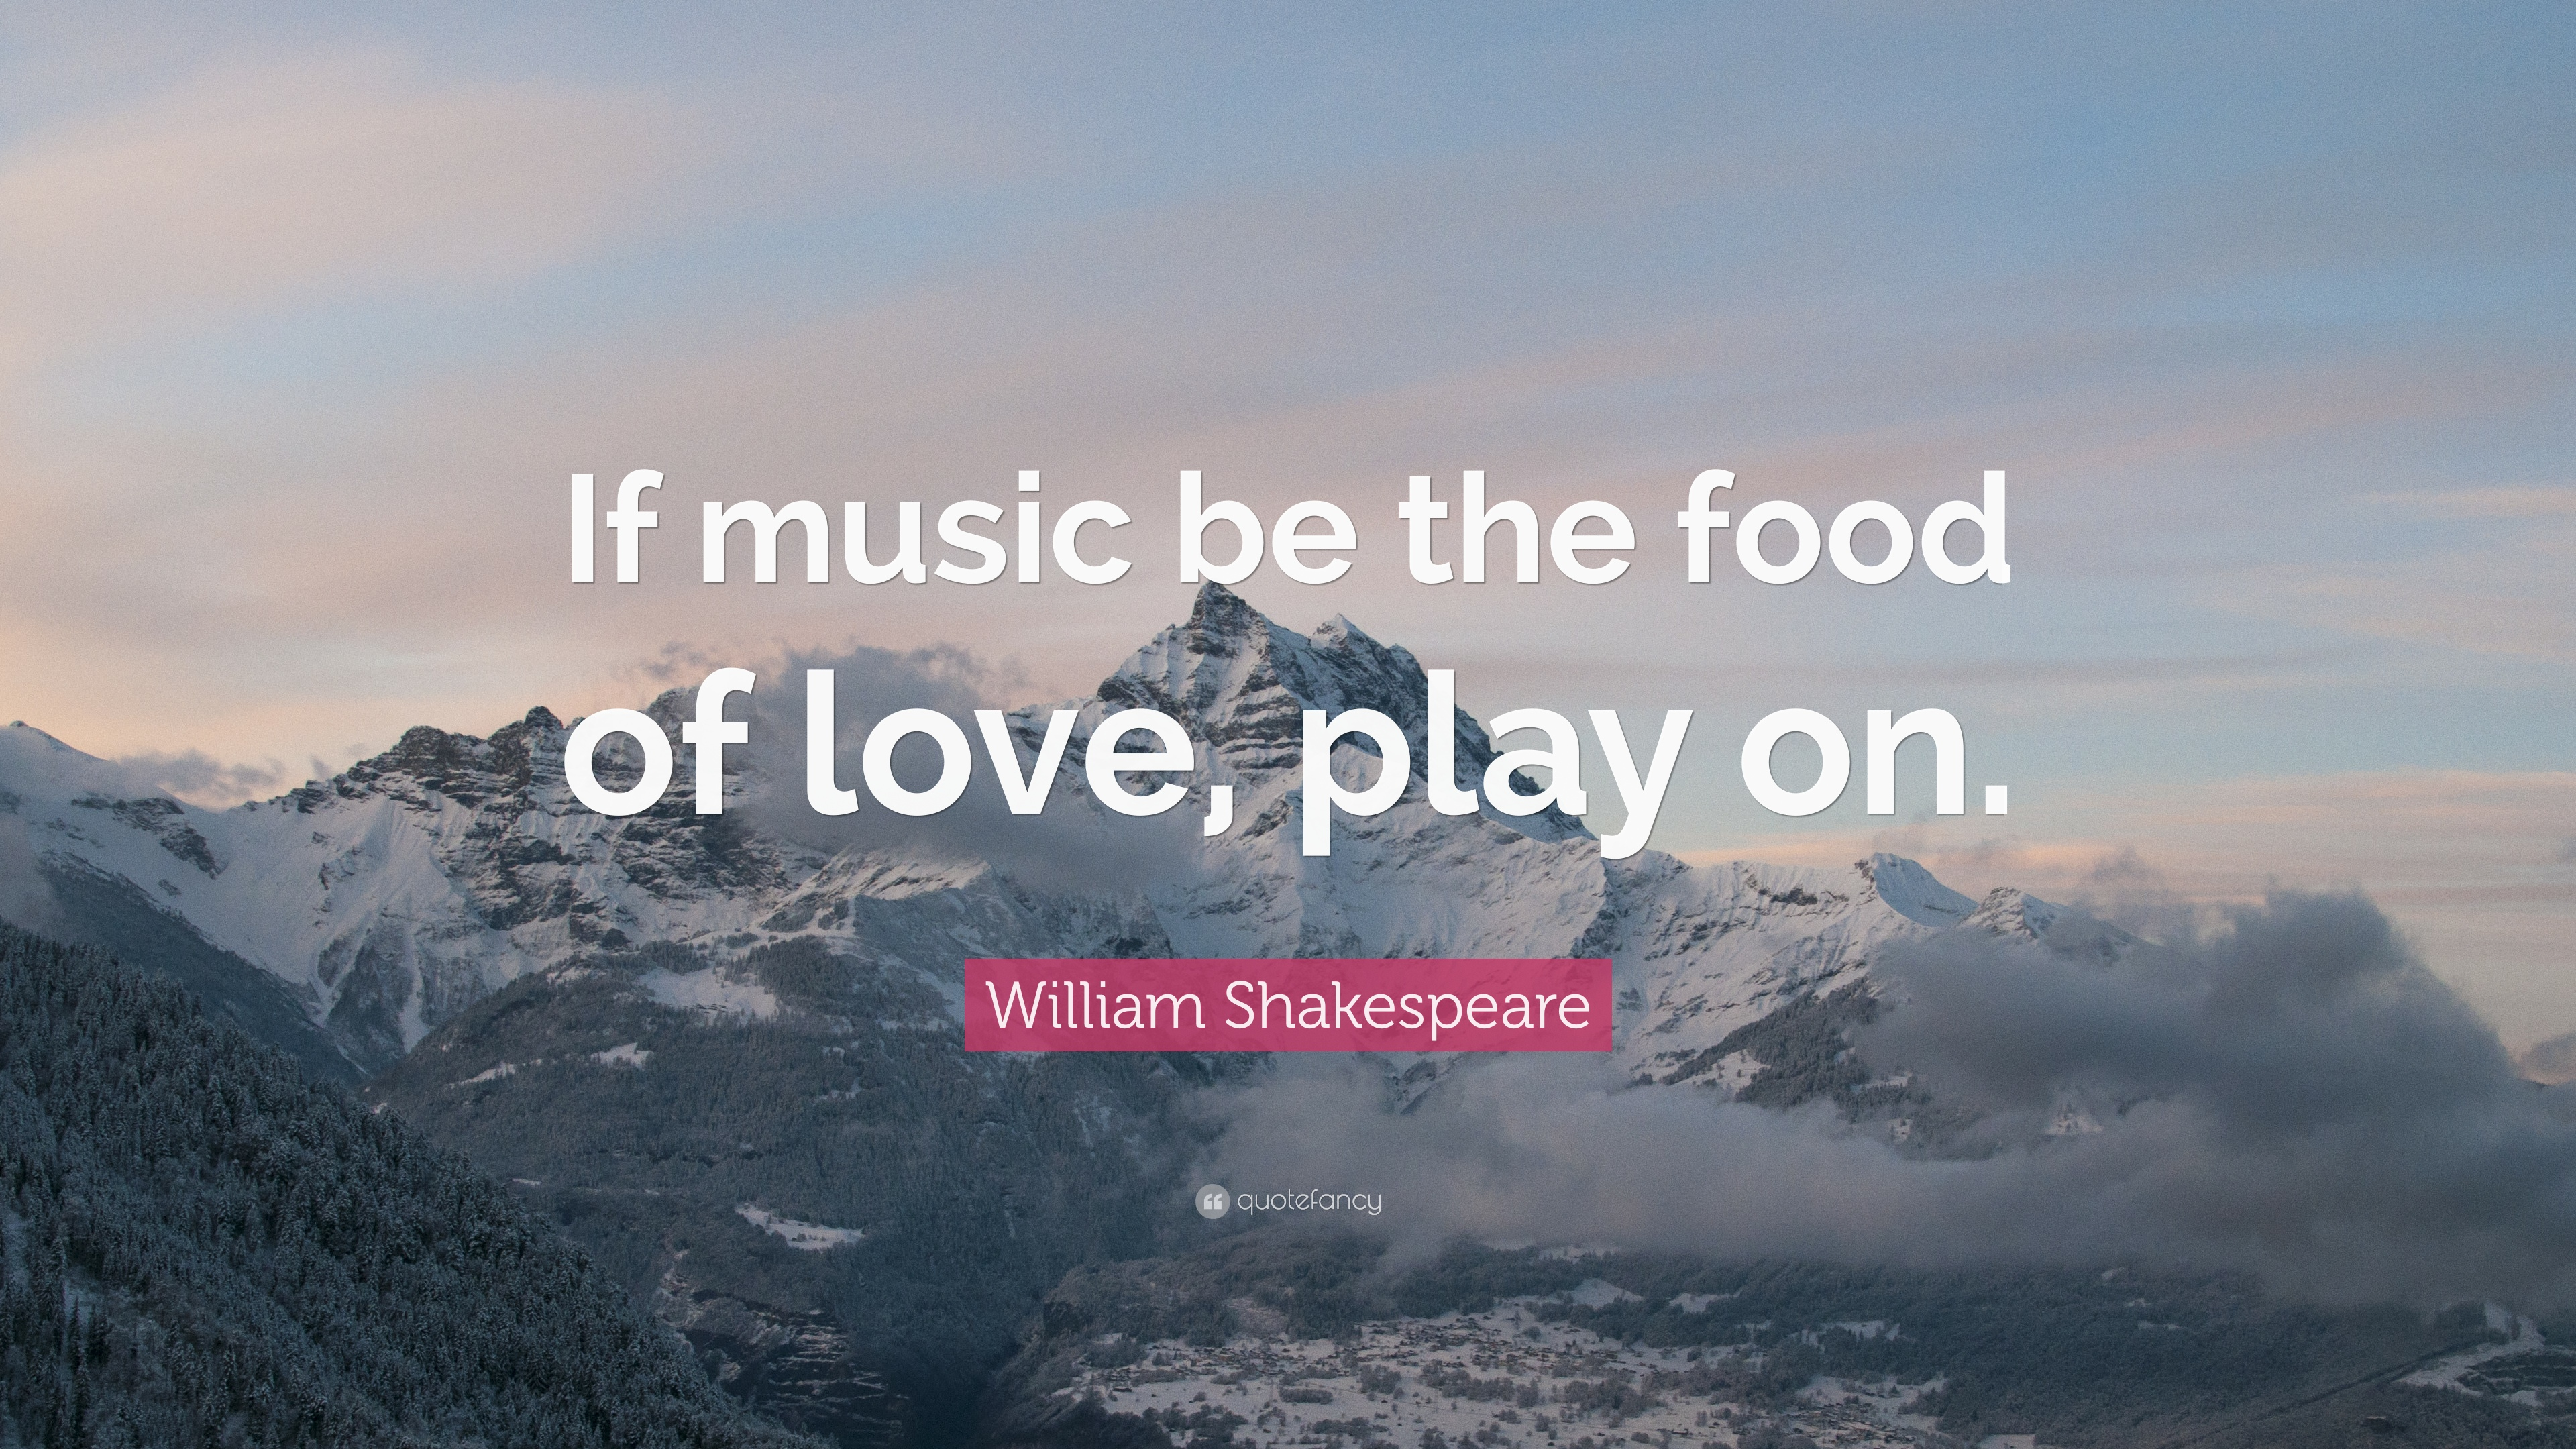 Cool Wallpaper Music Food - 28270-William-Shakespeare-Quote-If-music-be-the-food-of-love-play-on  Best Photo Reference_365965.jpg